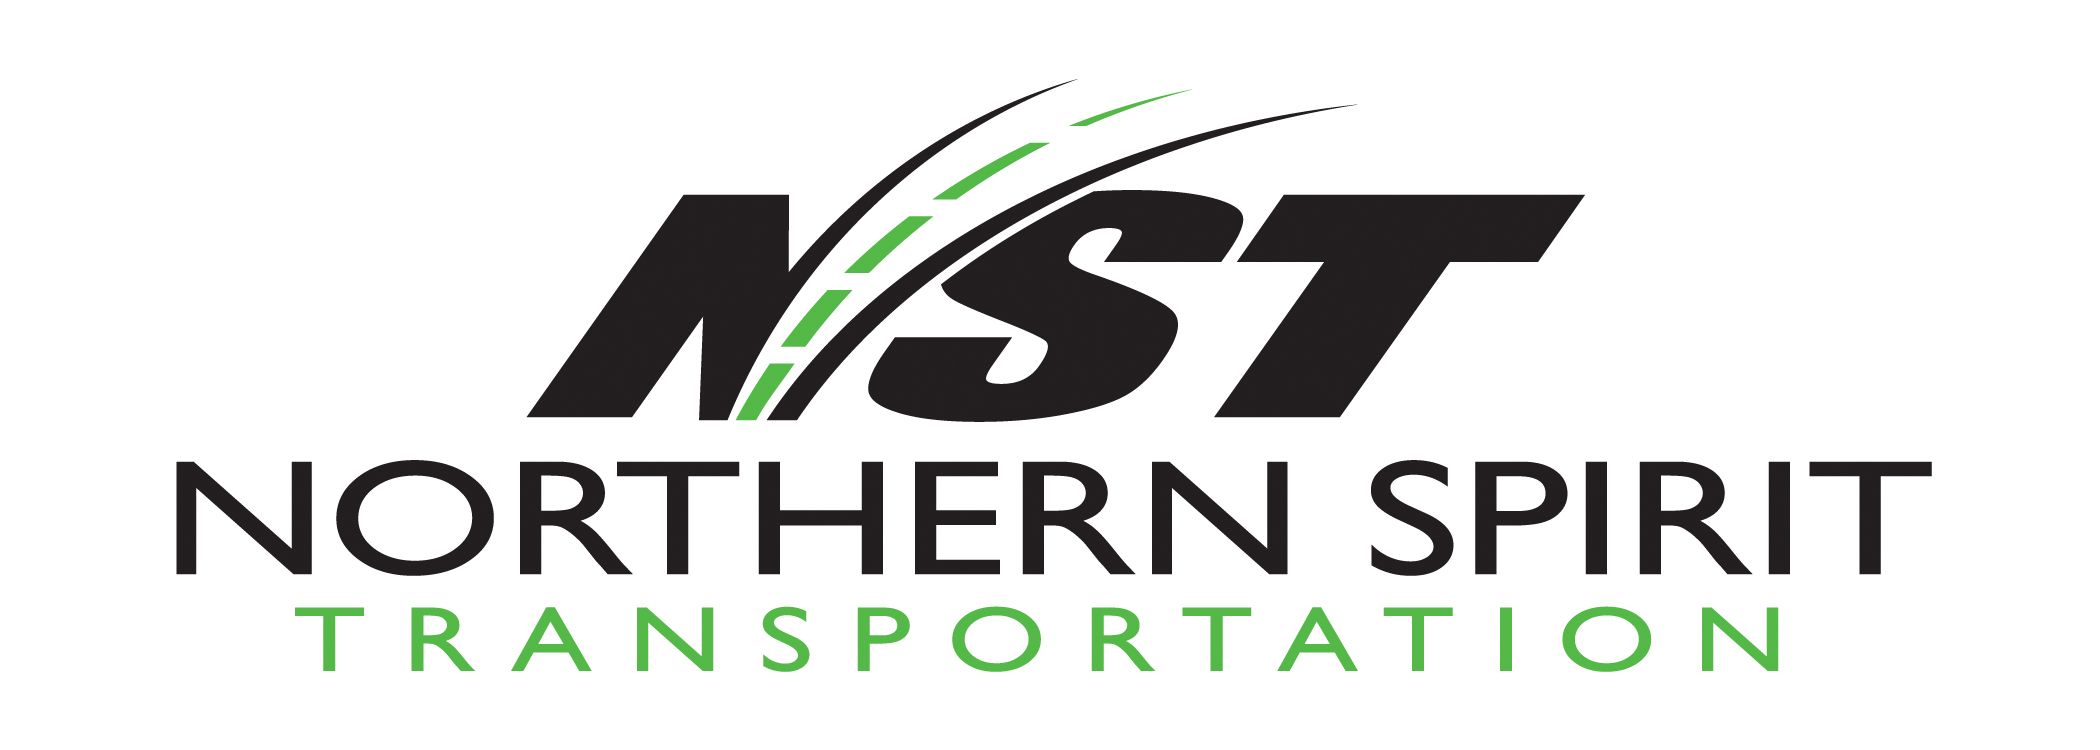 NORTHERN SPIRIT TRANSPORTION SERVICES LTD. logo